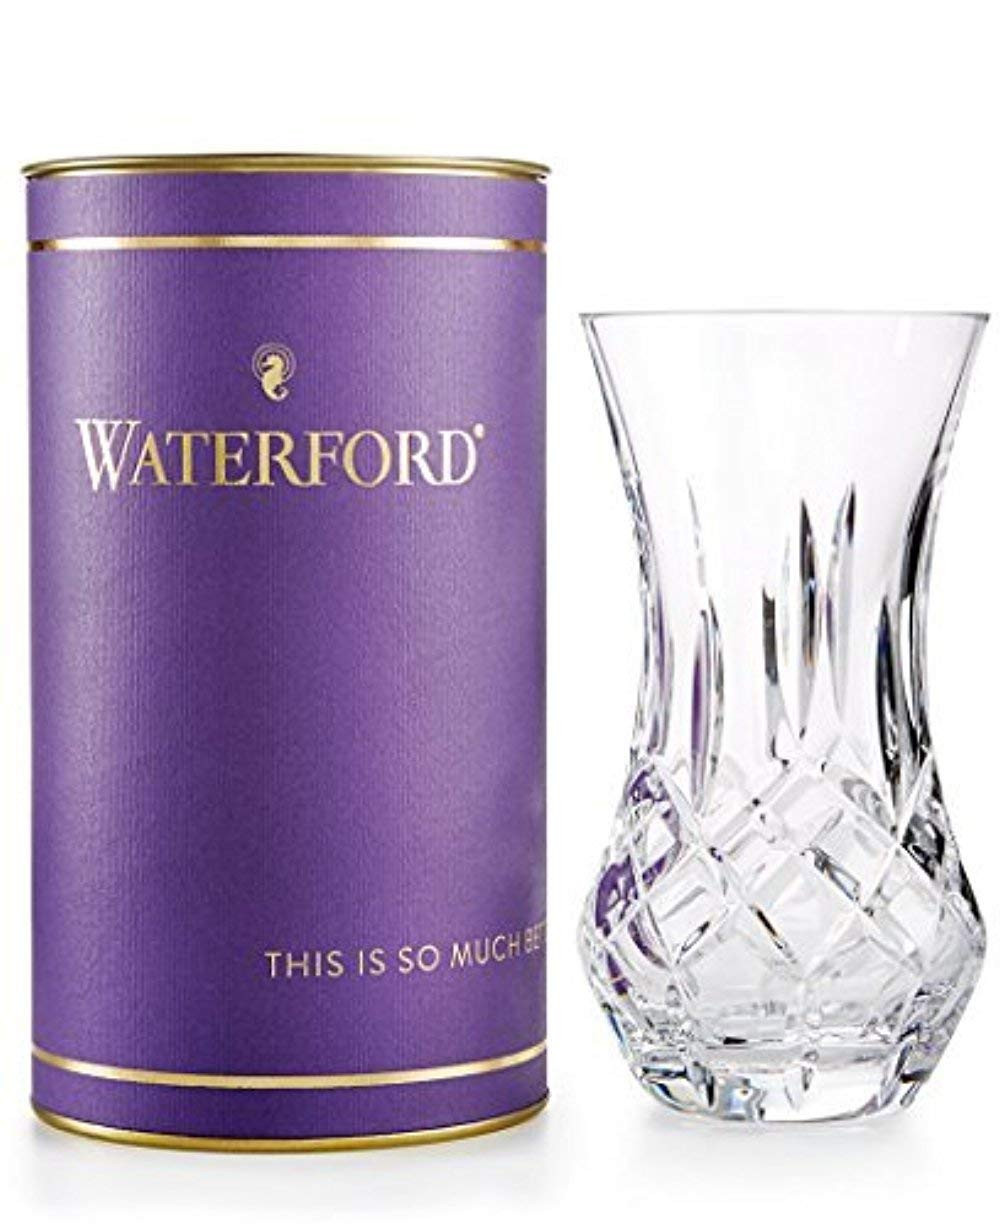 waterford sugar bud vase of amazon com waterford giftology lismore bon bon 6 vase home kitchen within 619tf7ex ml sl1225